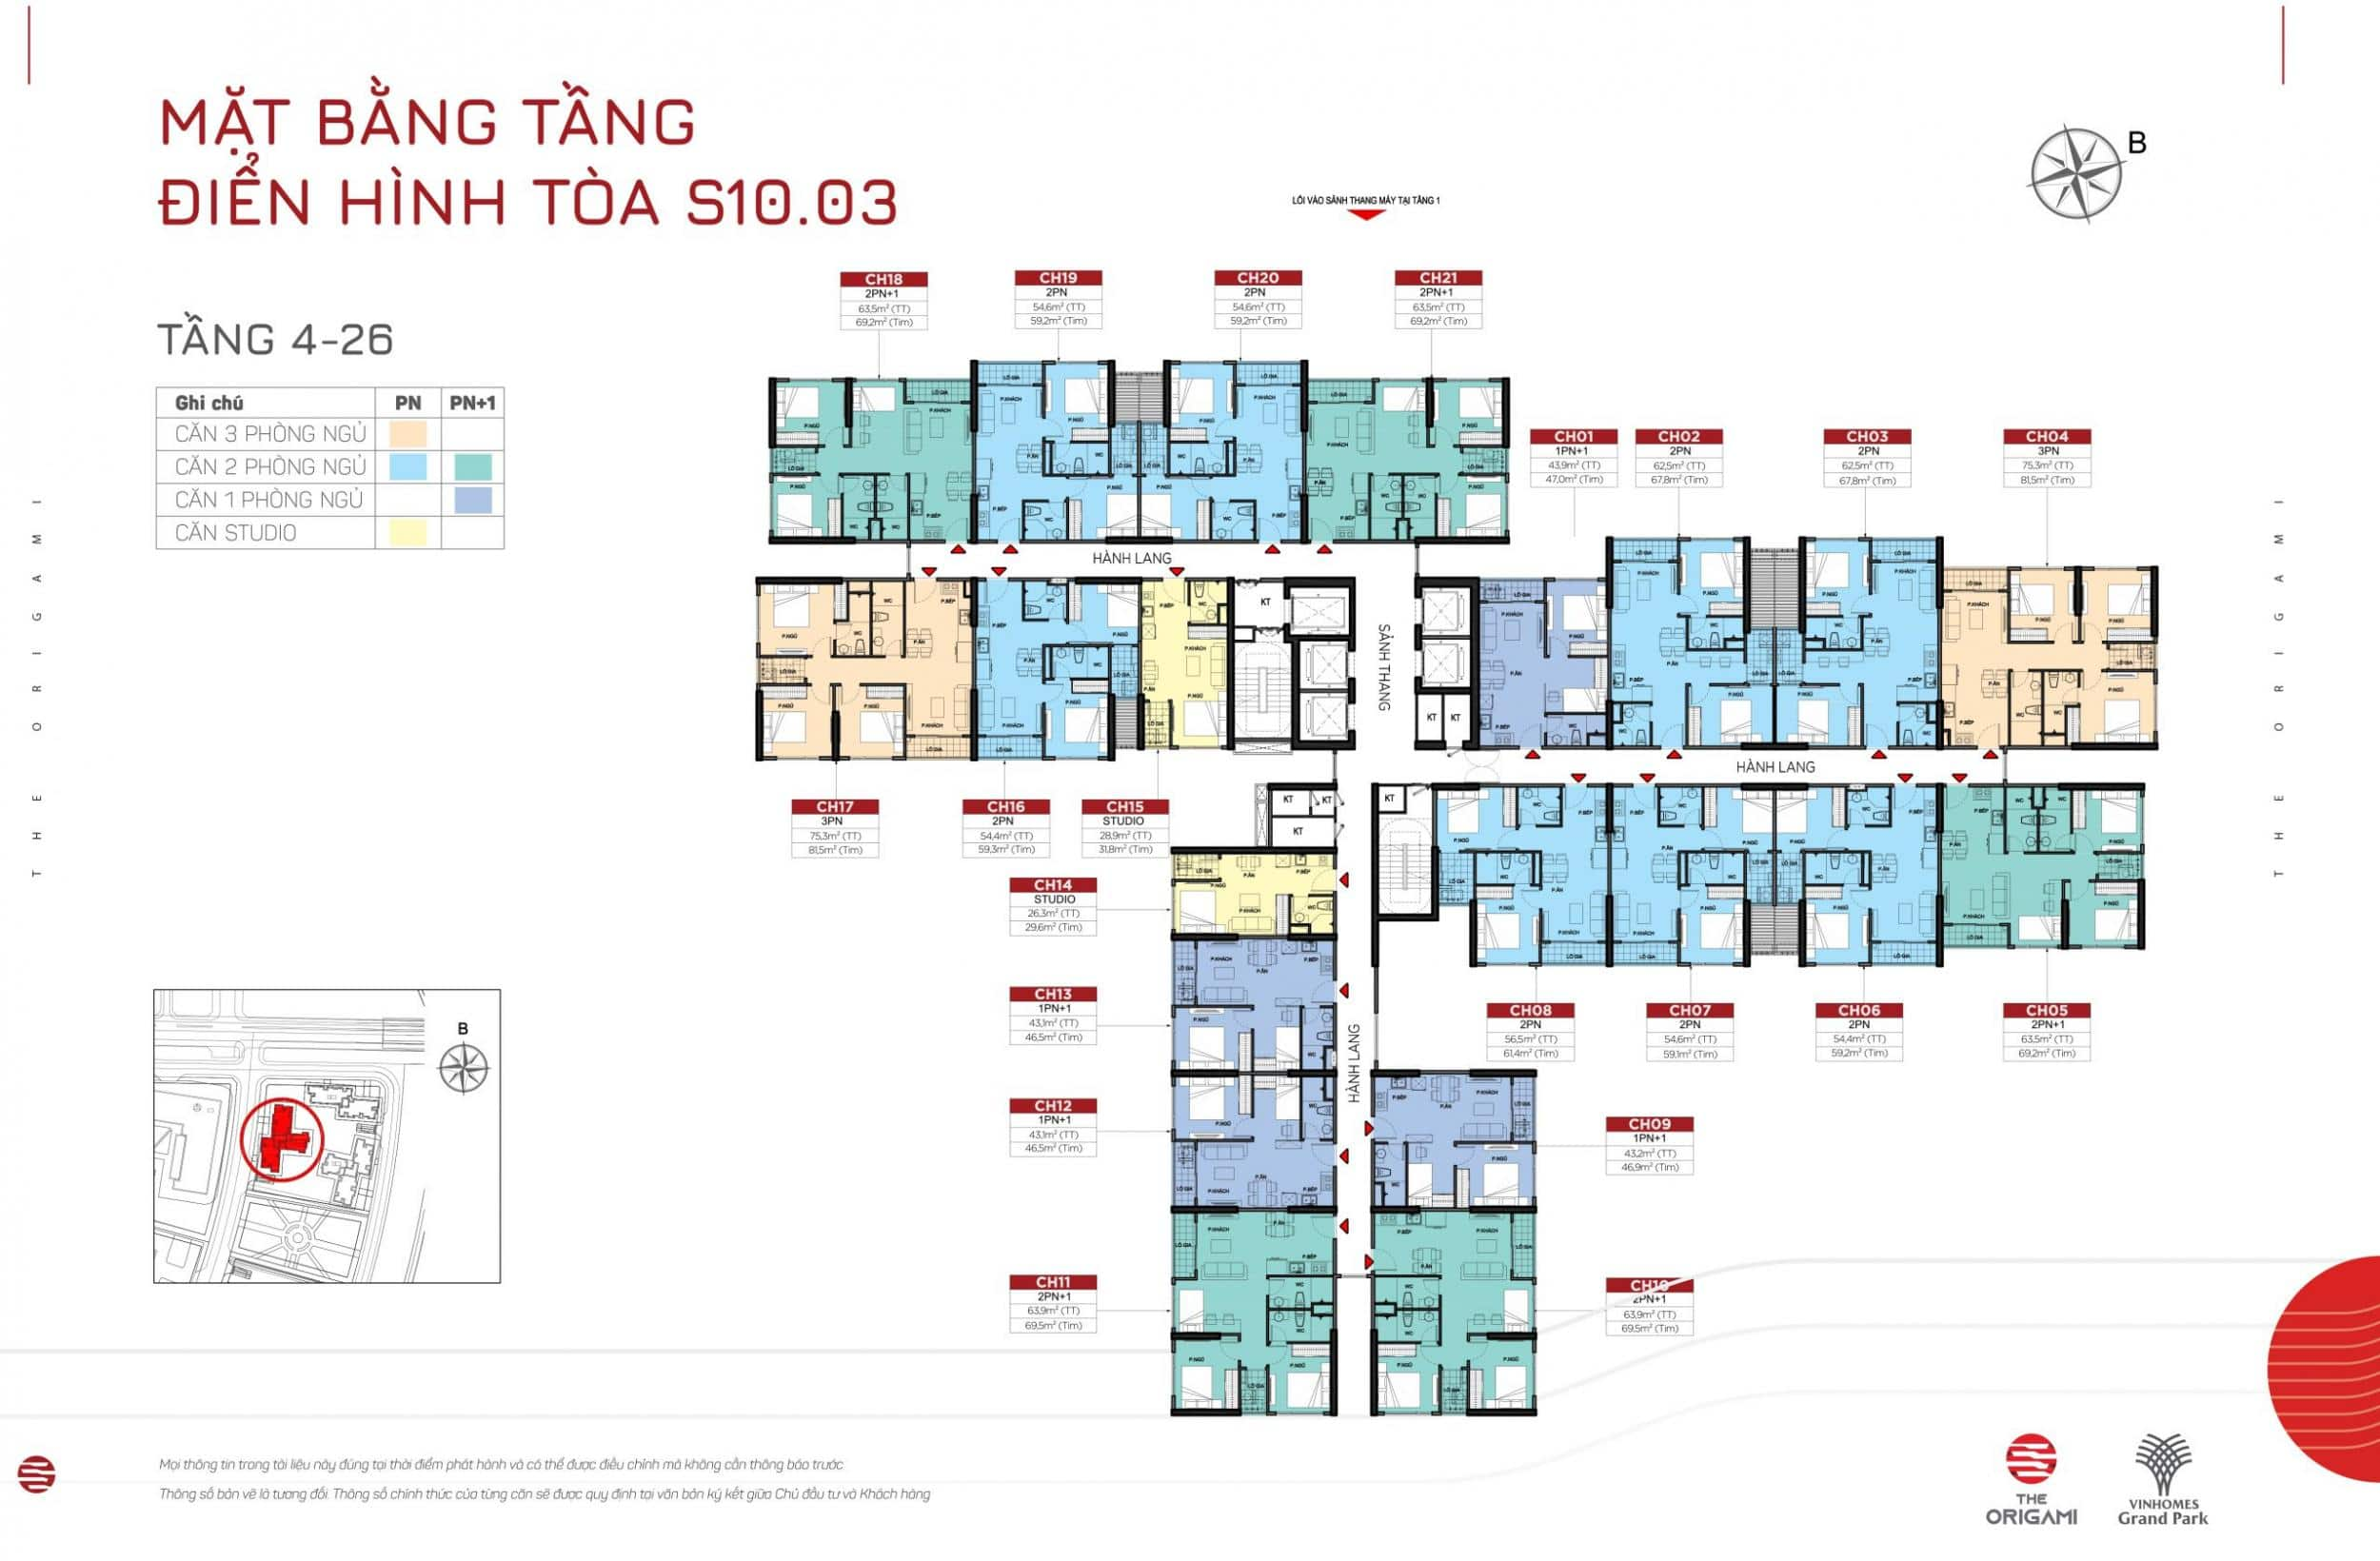 Mặt bằng S10.03 The Origami Vinhomes Grand Park - tầng 4-26